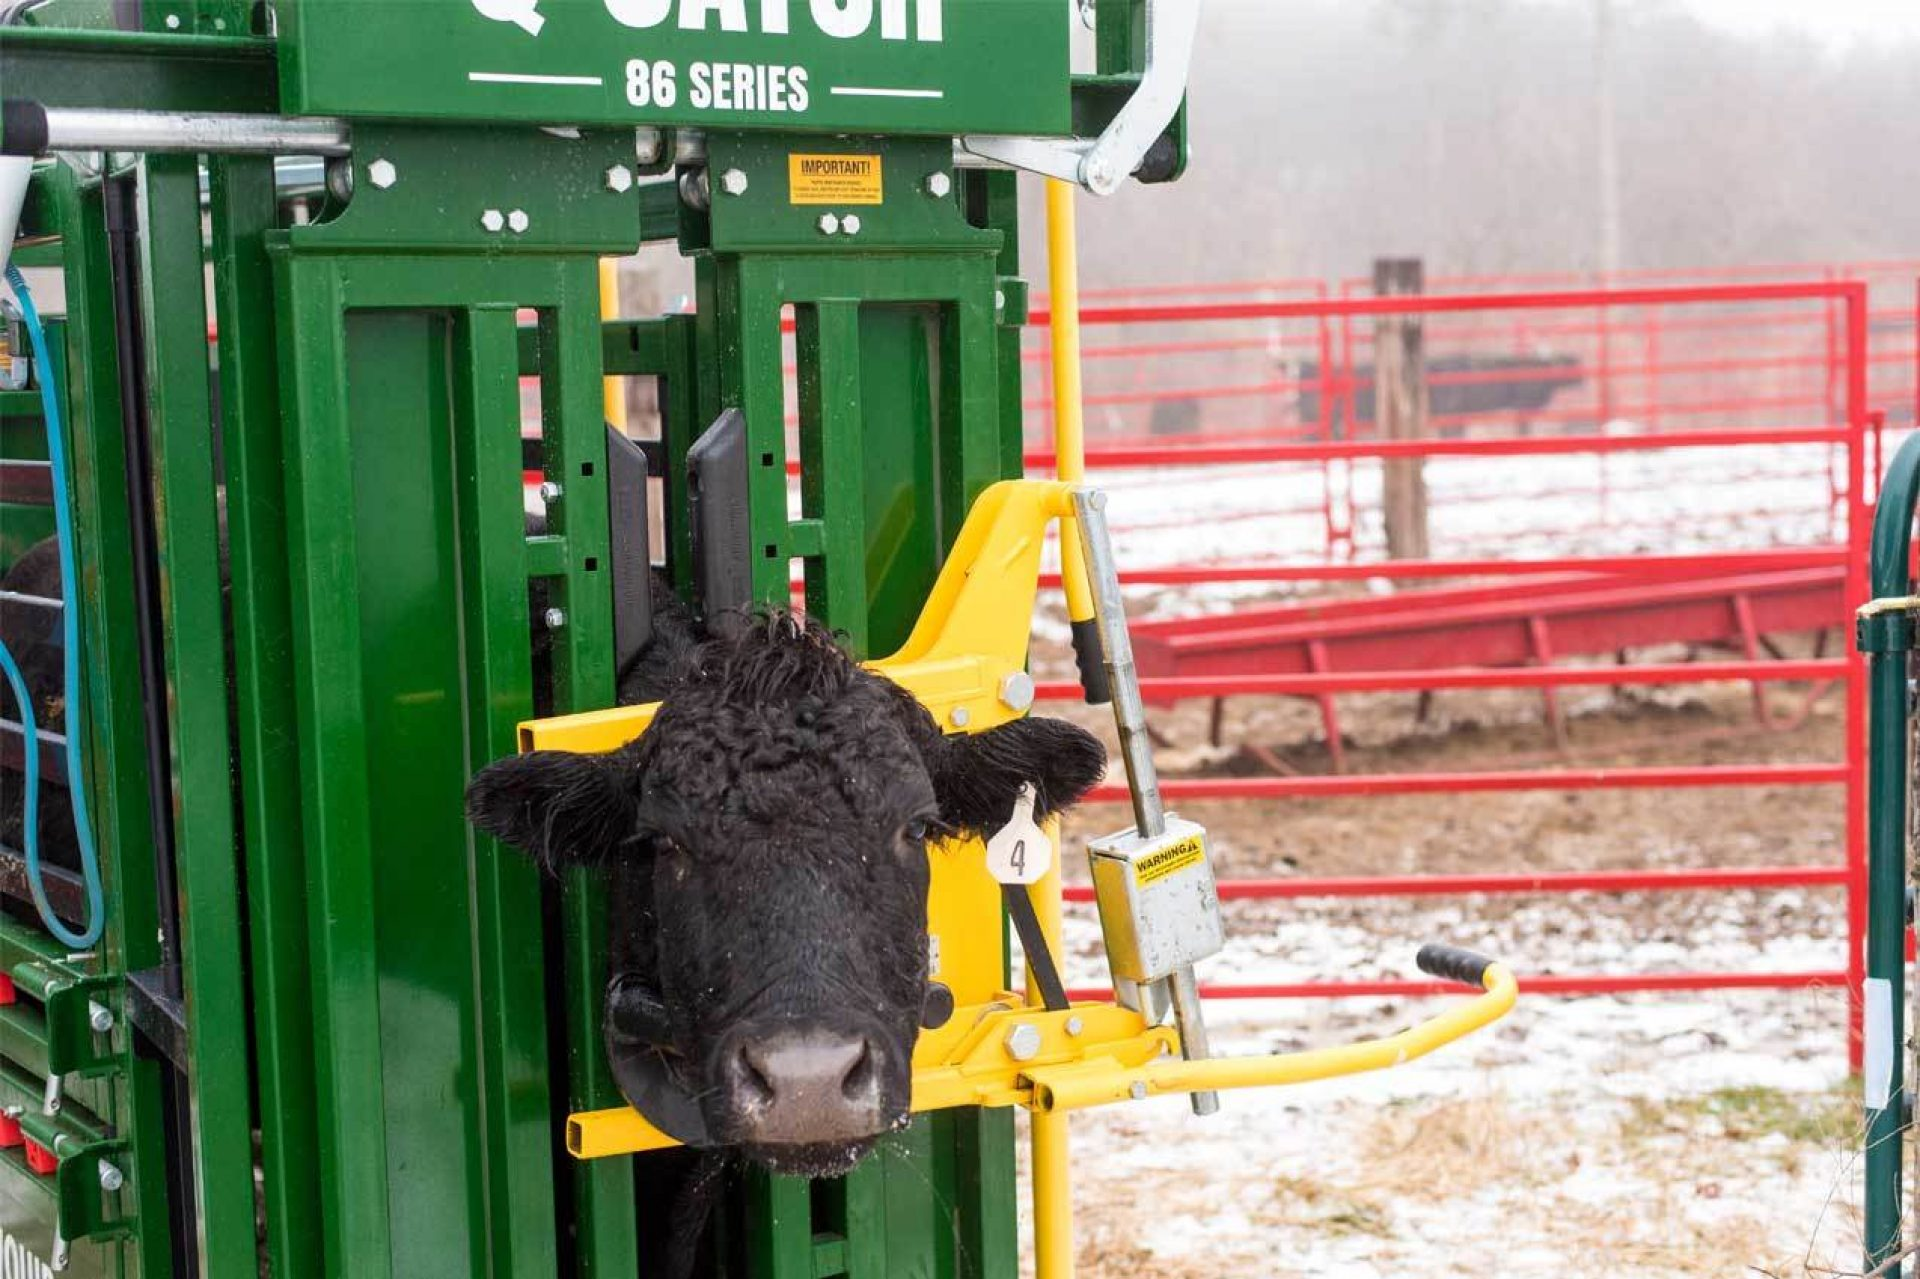 Black cow in Q-Catch 86 Series cattle chute with red fence and snow